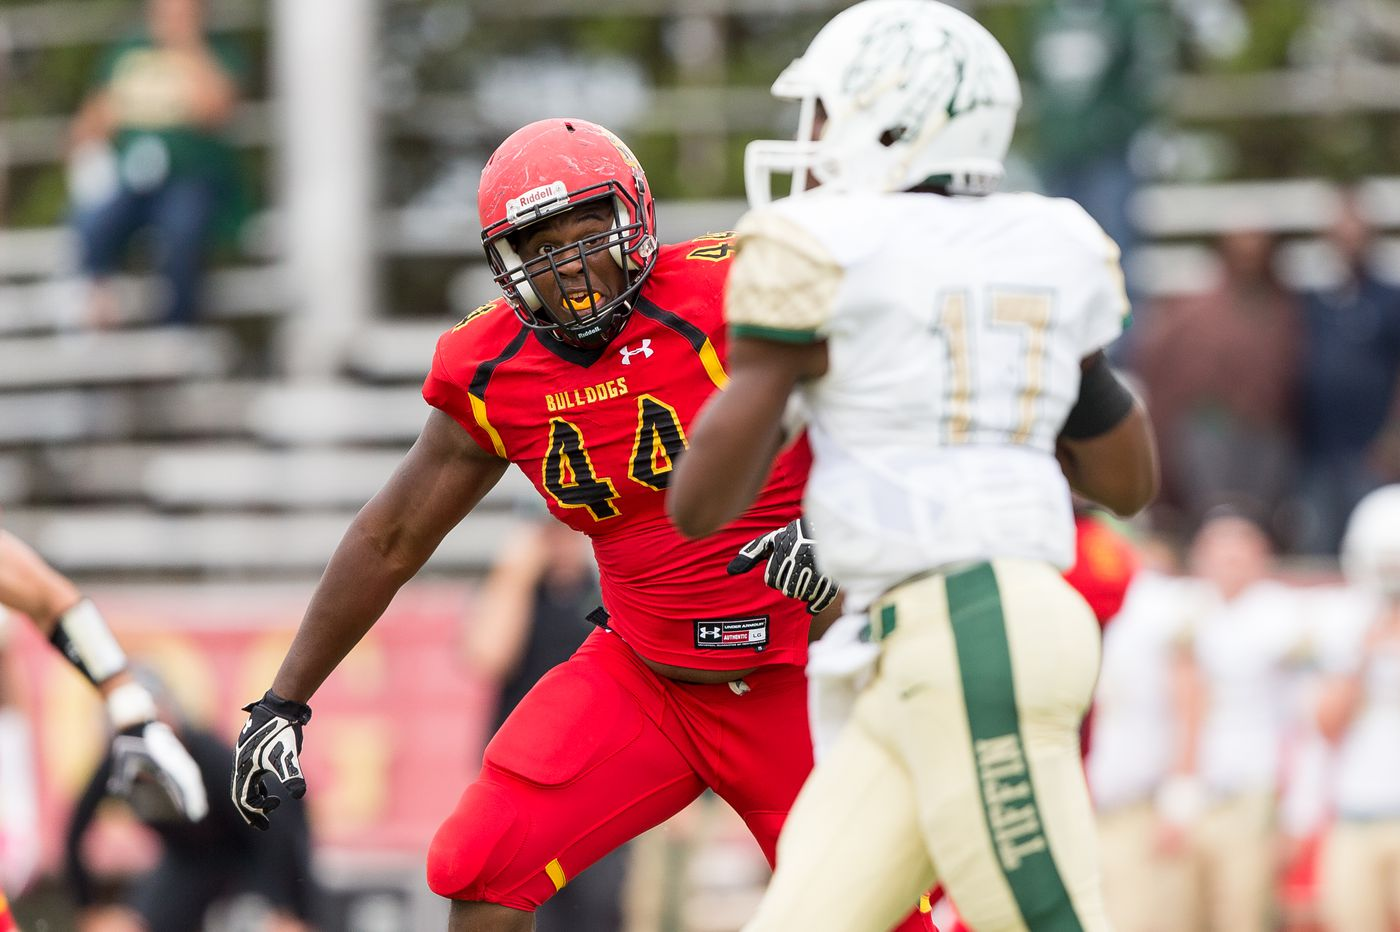 West Deptford product Jamil Pollard to play in Division II football national championship game for Ferris State